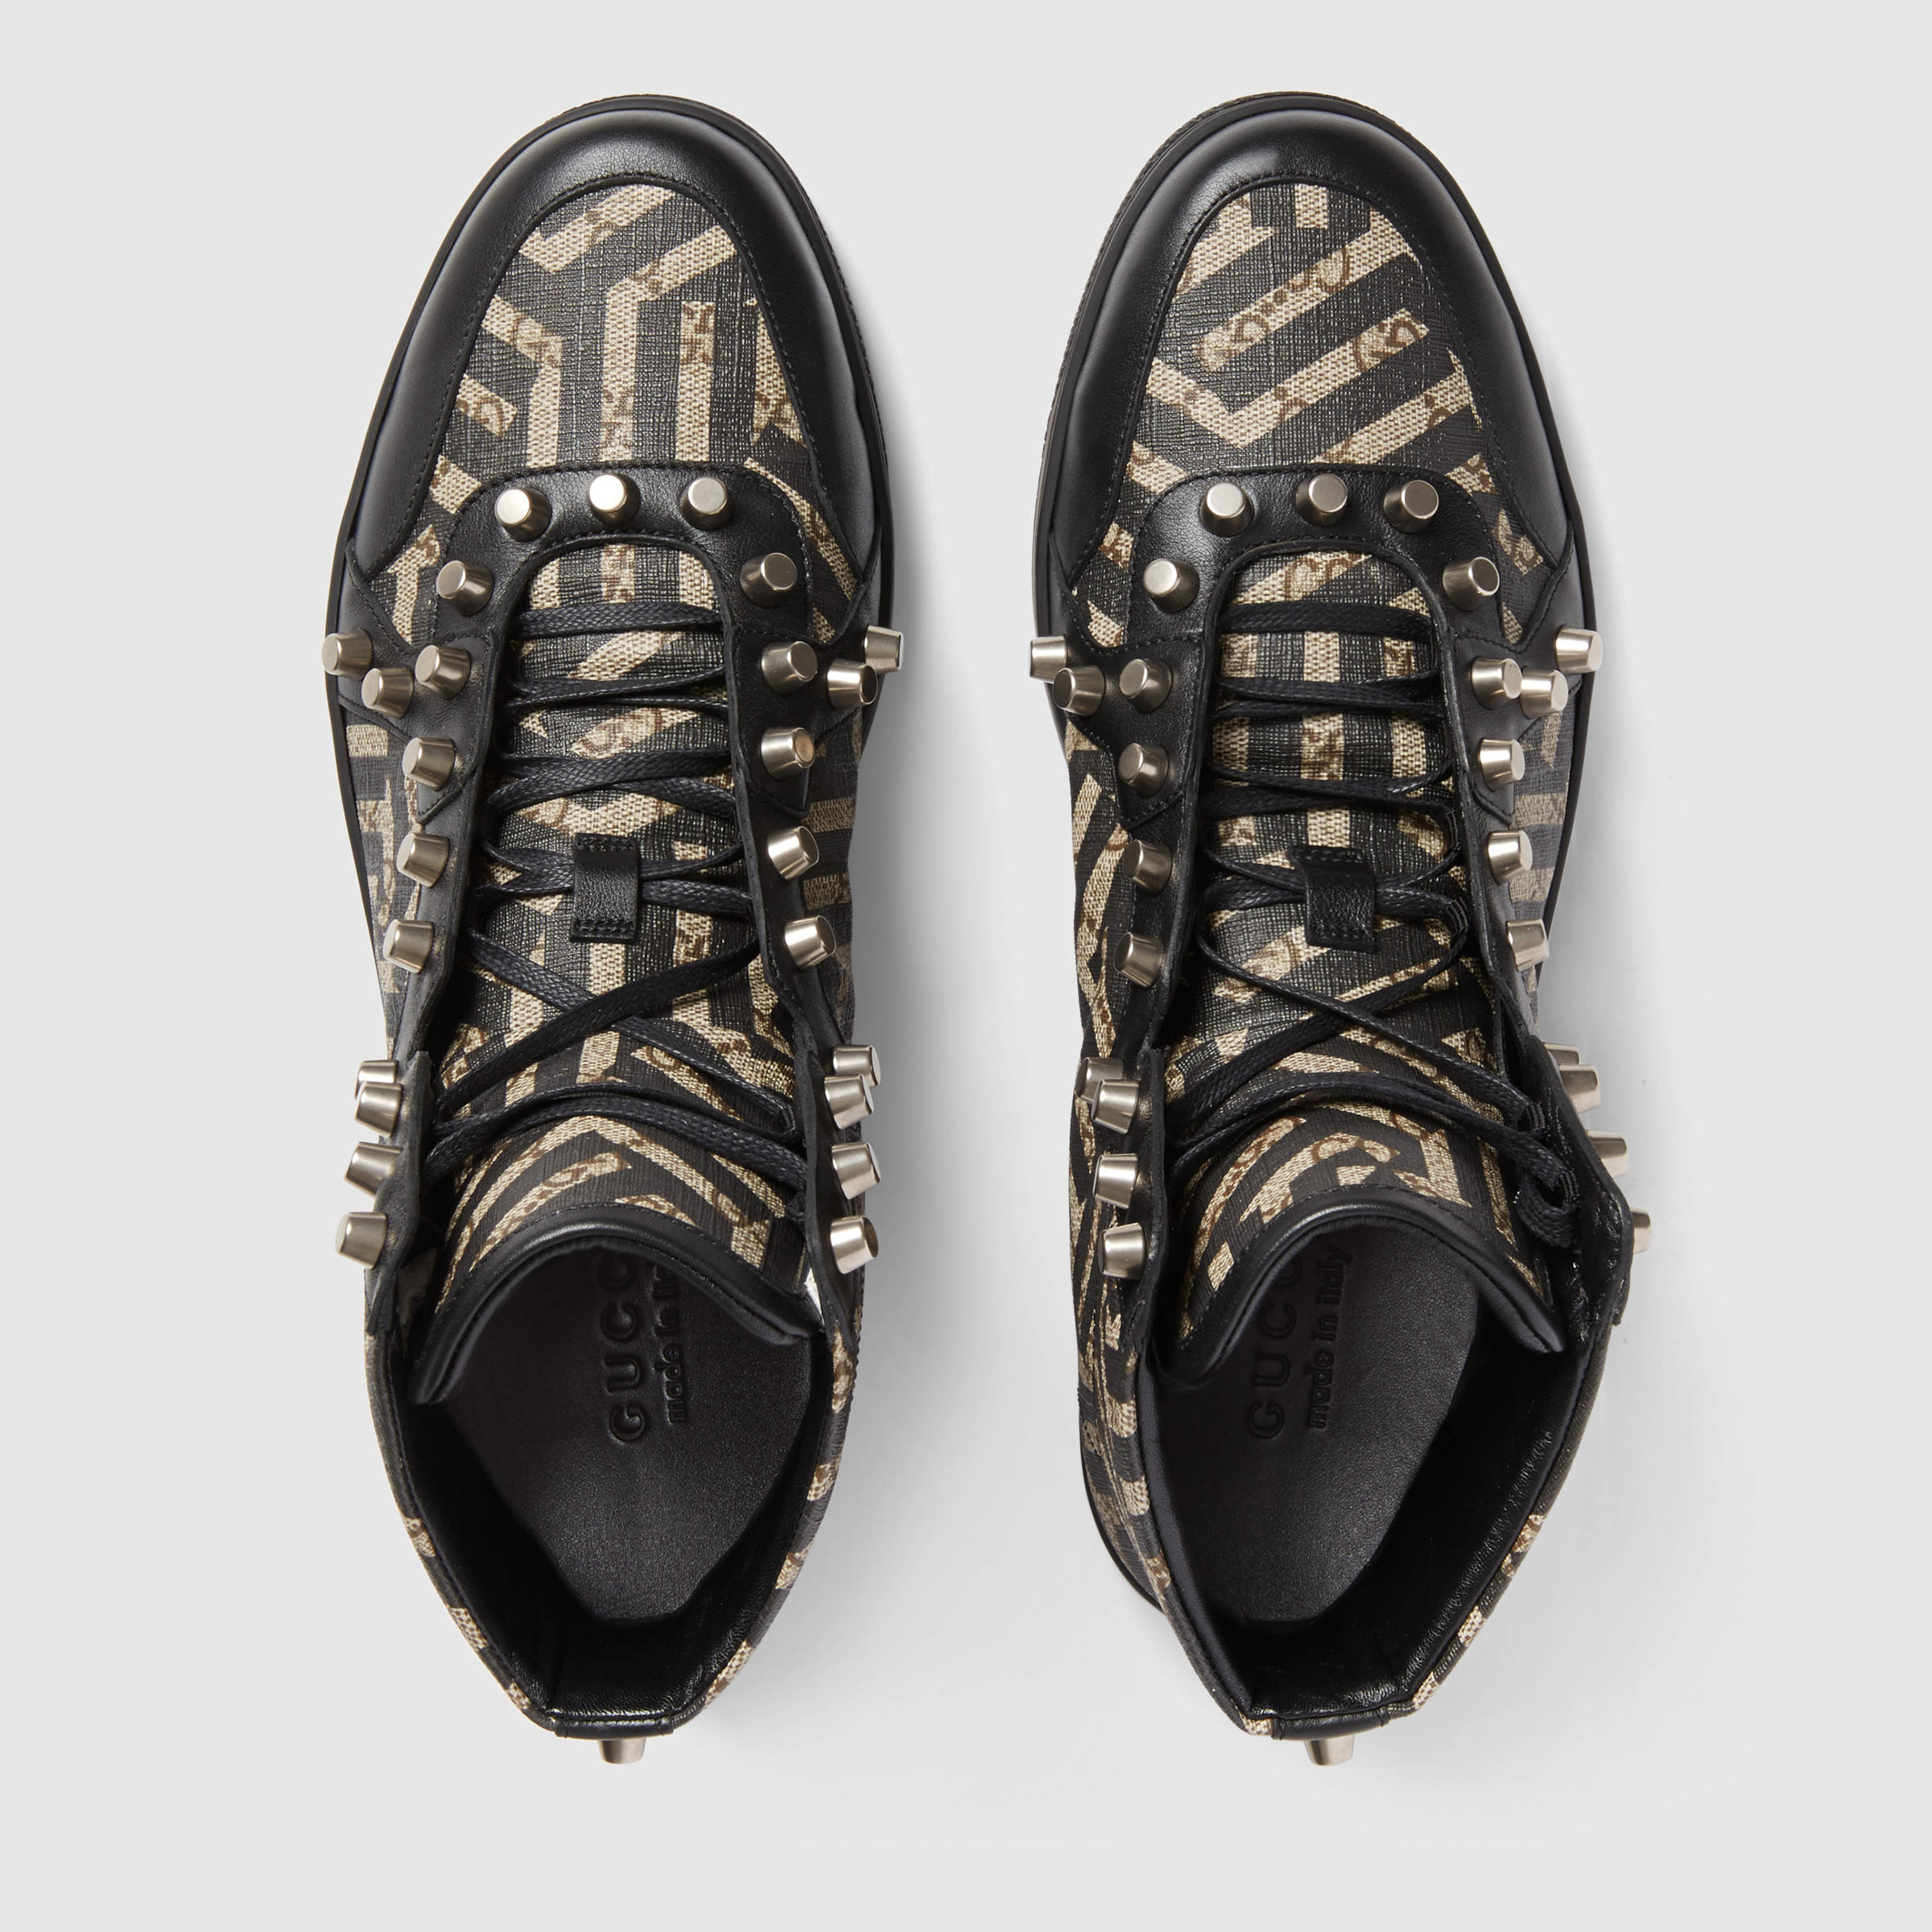 0485a6e5a780 Lyst - Gucci Gg Caleido High-top With Studs in Black for Men